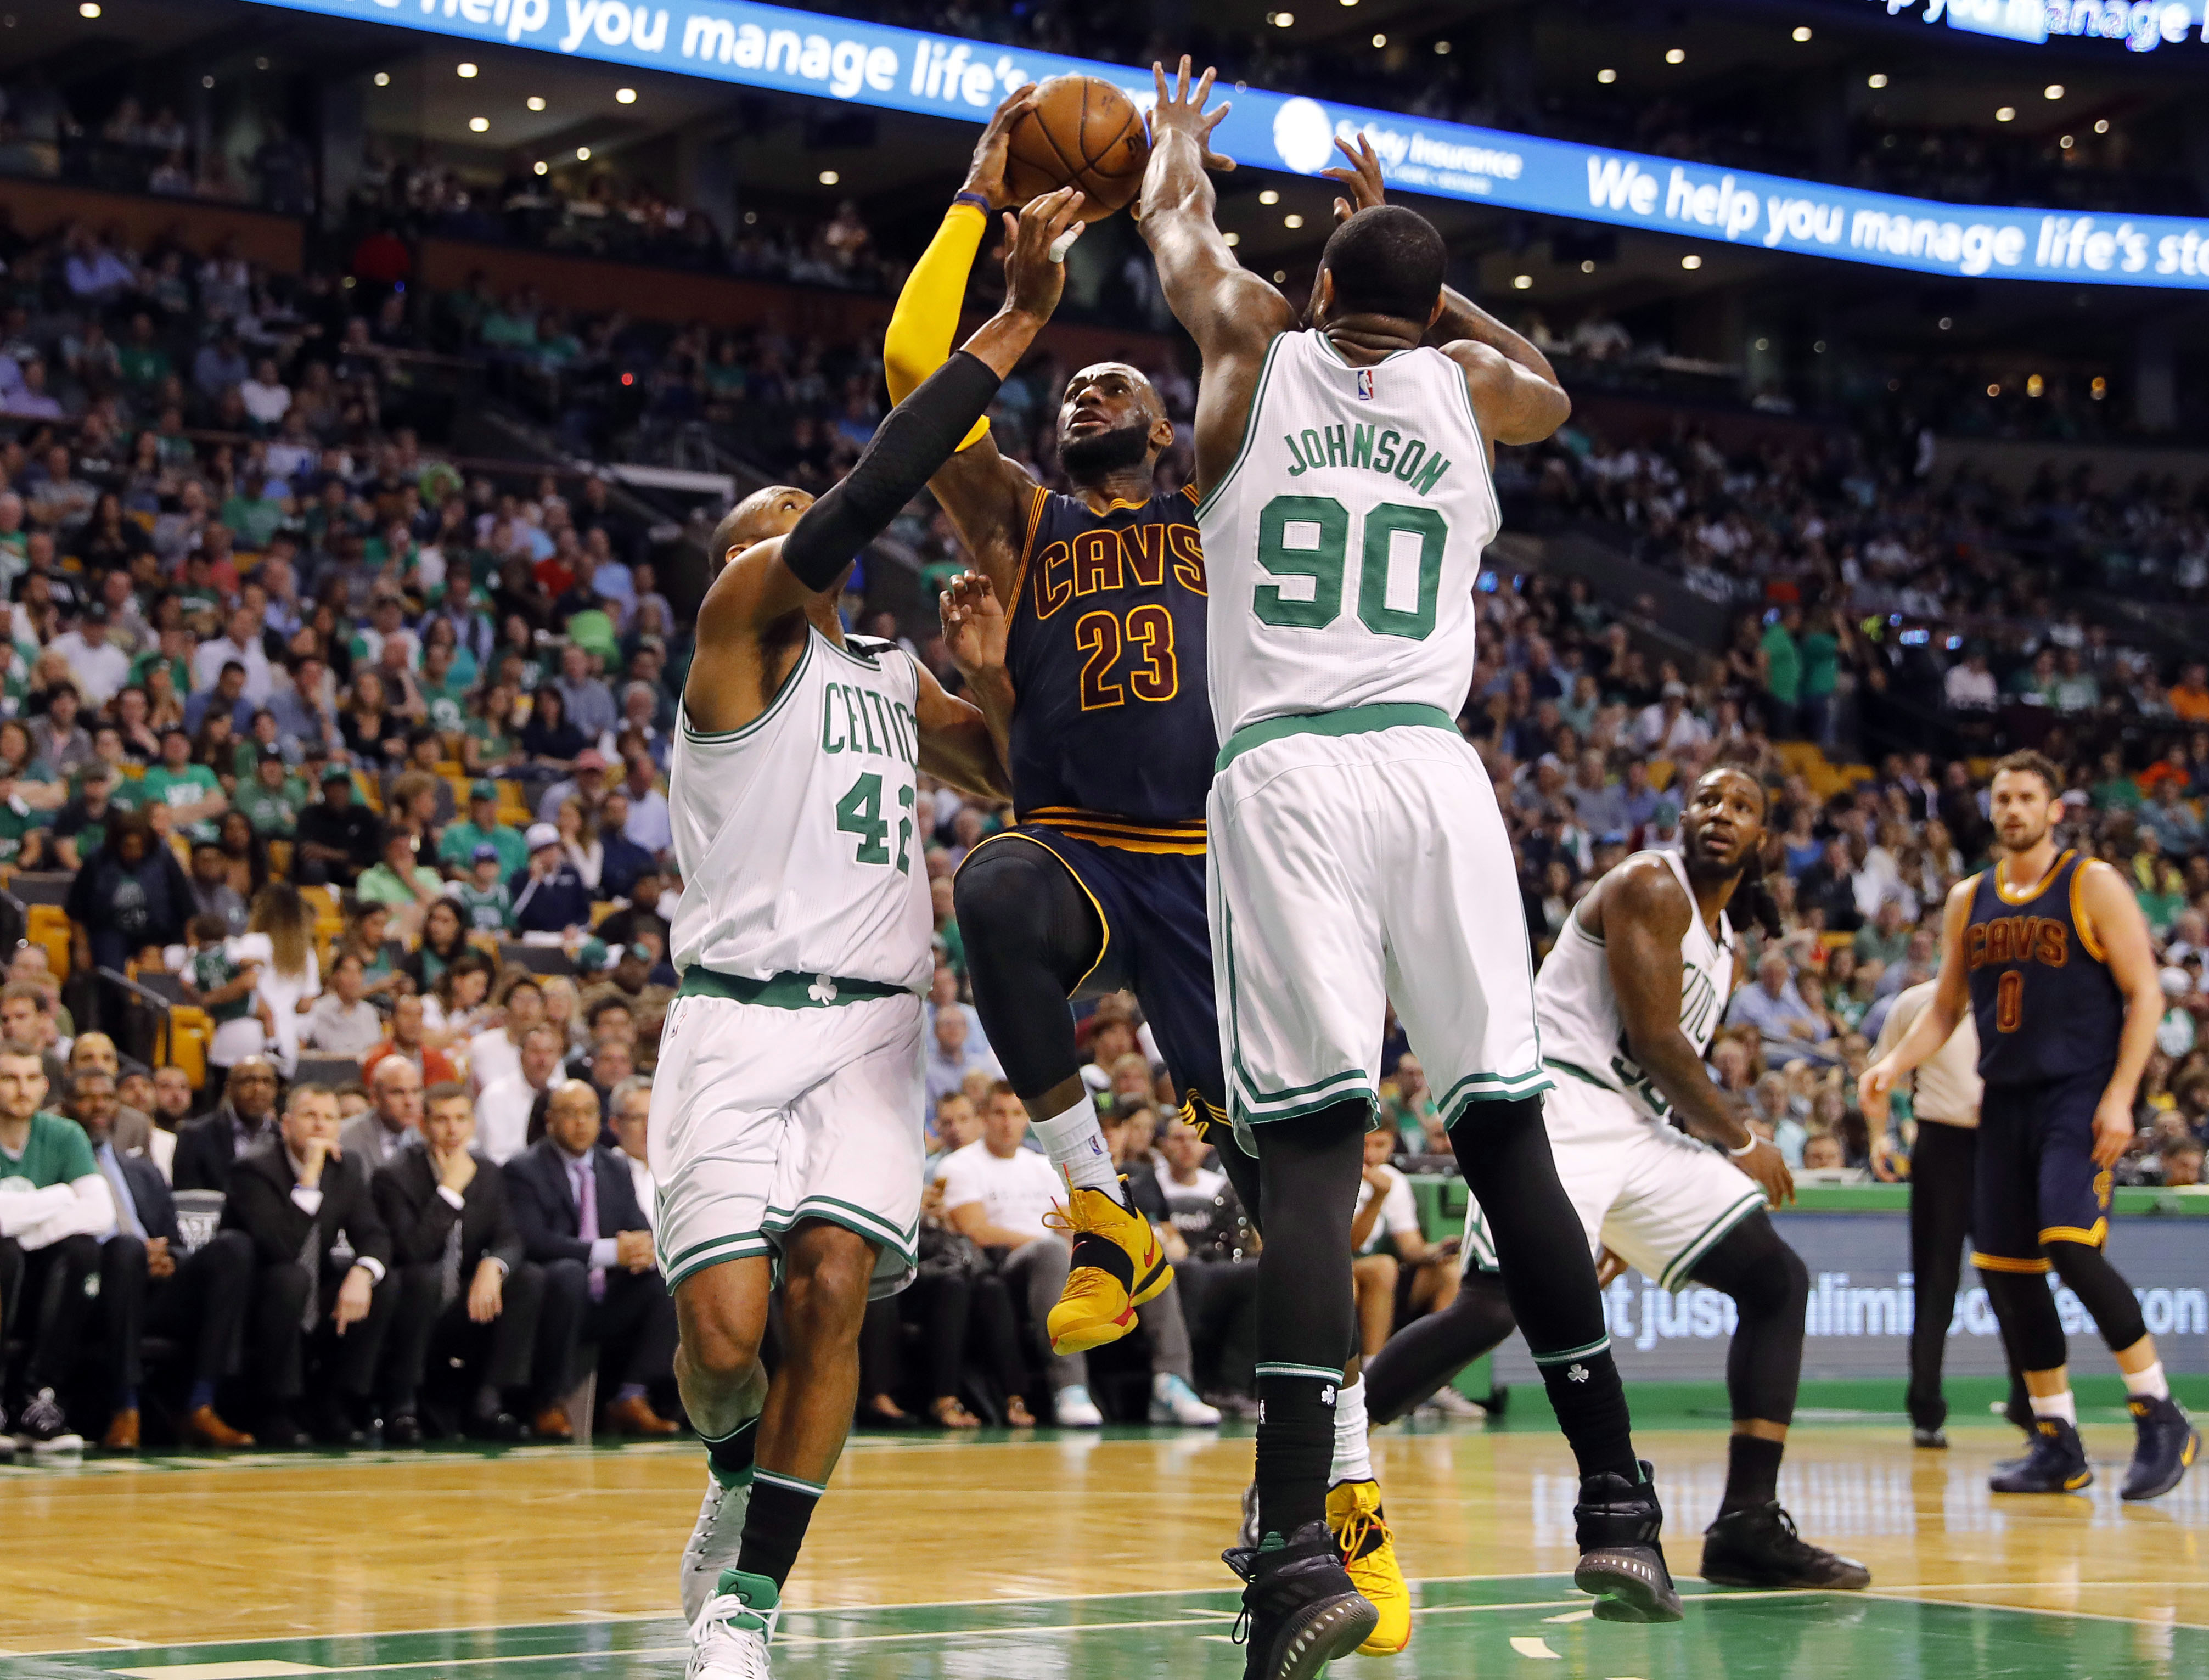 10064669-nba-playoffs-cleveland-cavaliers-at-boston-celtics